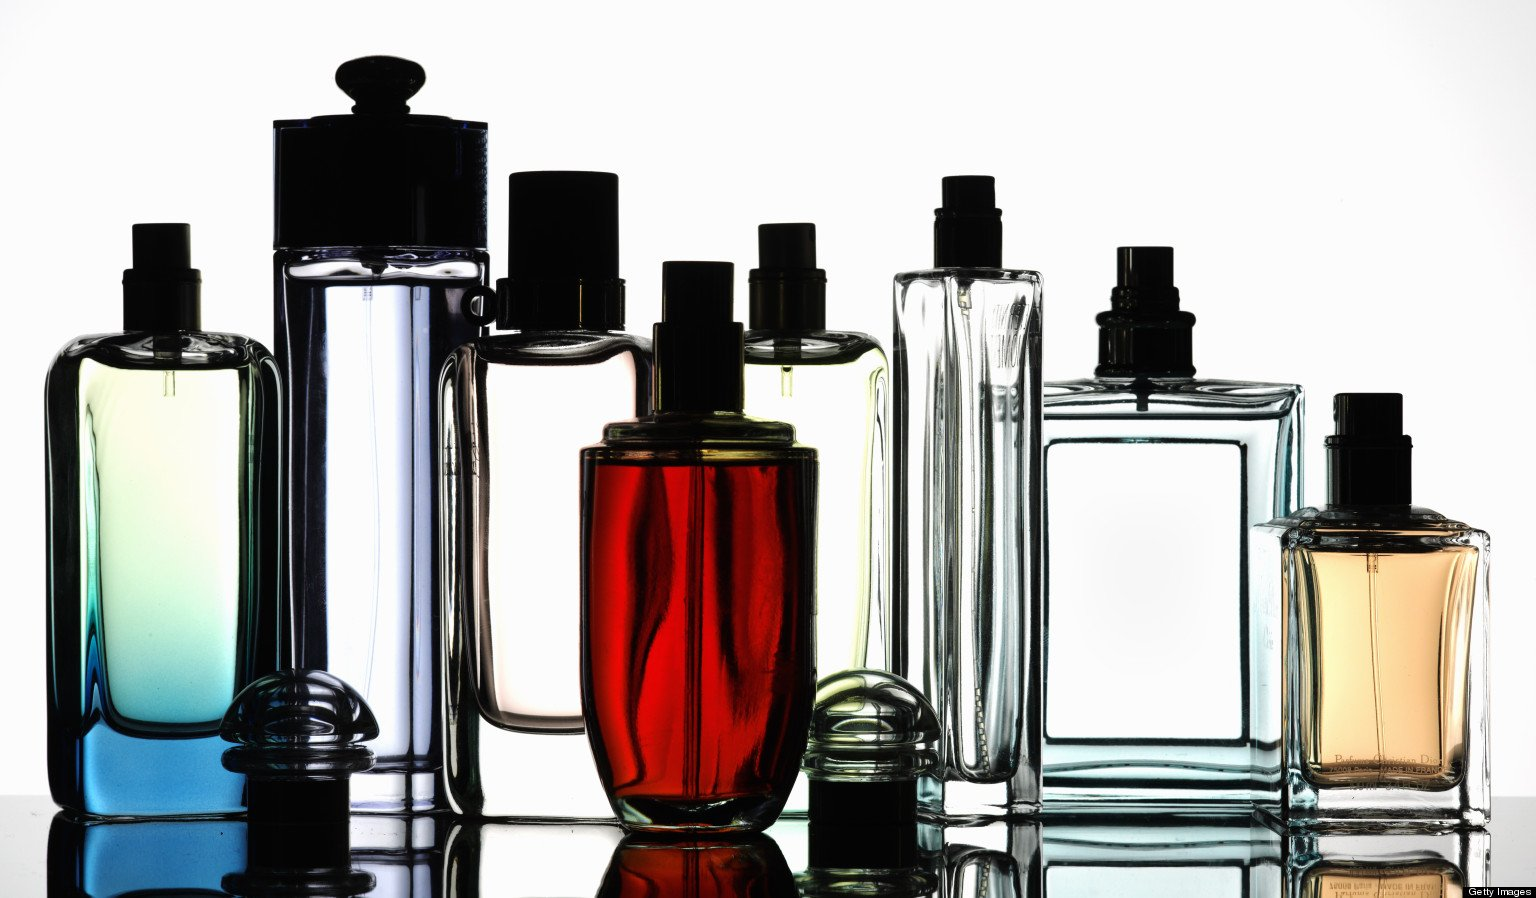 10 Of The Strangest Fragrances Ever Created